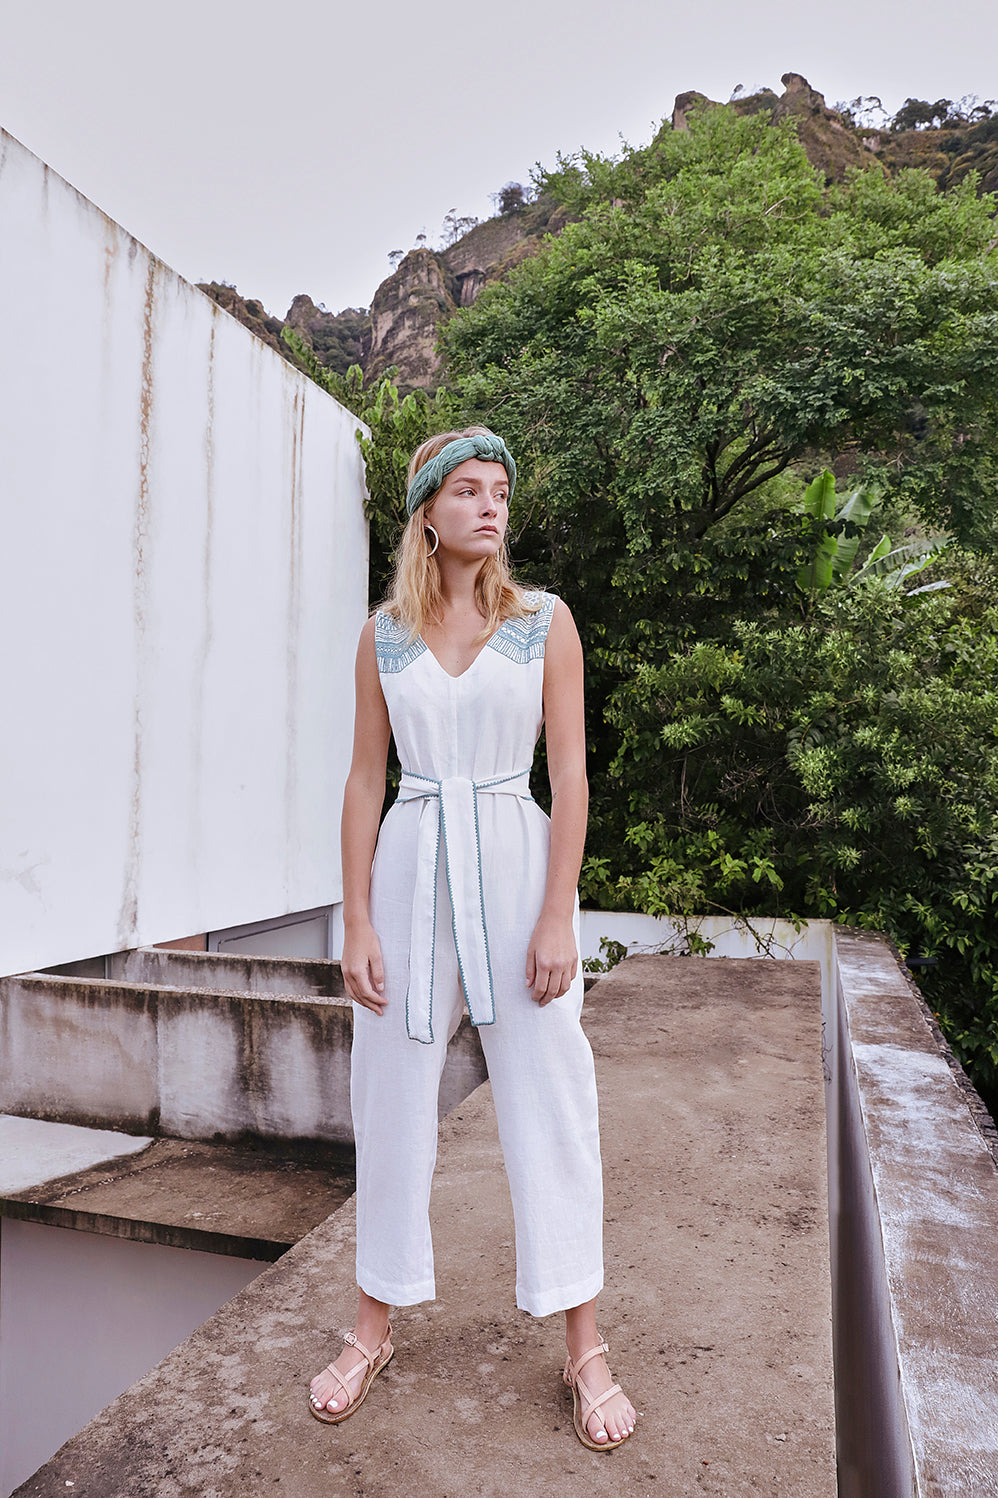 THE COSMO DAY JUMPSUIT